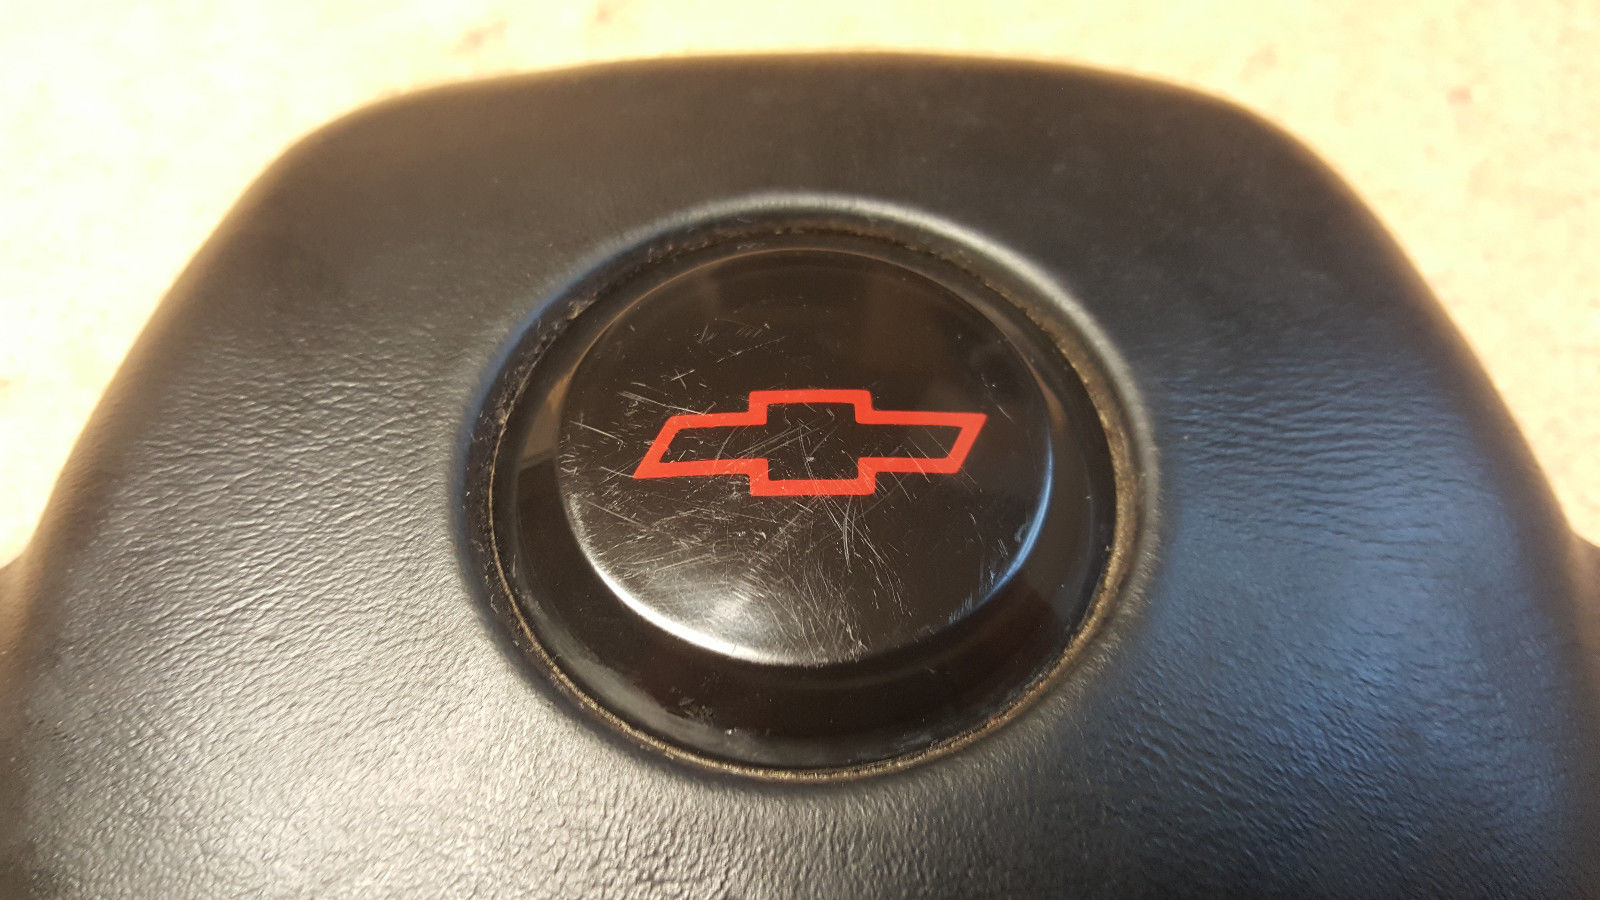 Chevy 3 Spoke Steering Wheel Horn Pad 17996793 1982-86 Camaro 1990-94 Lumina Does not apply